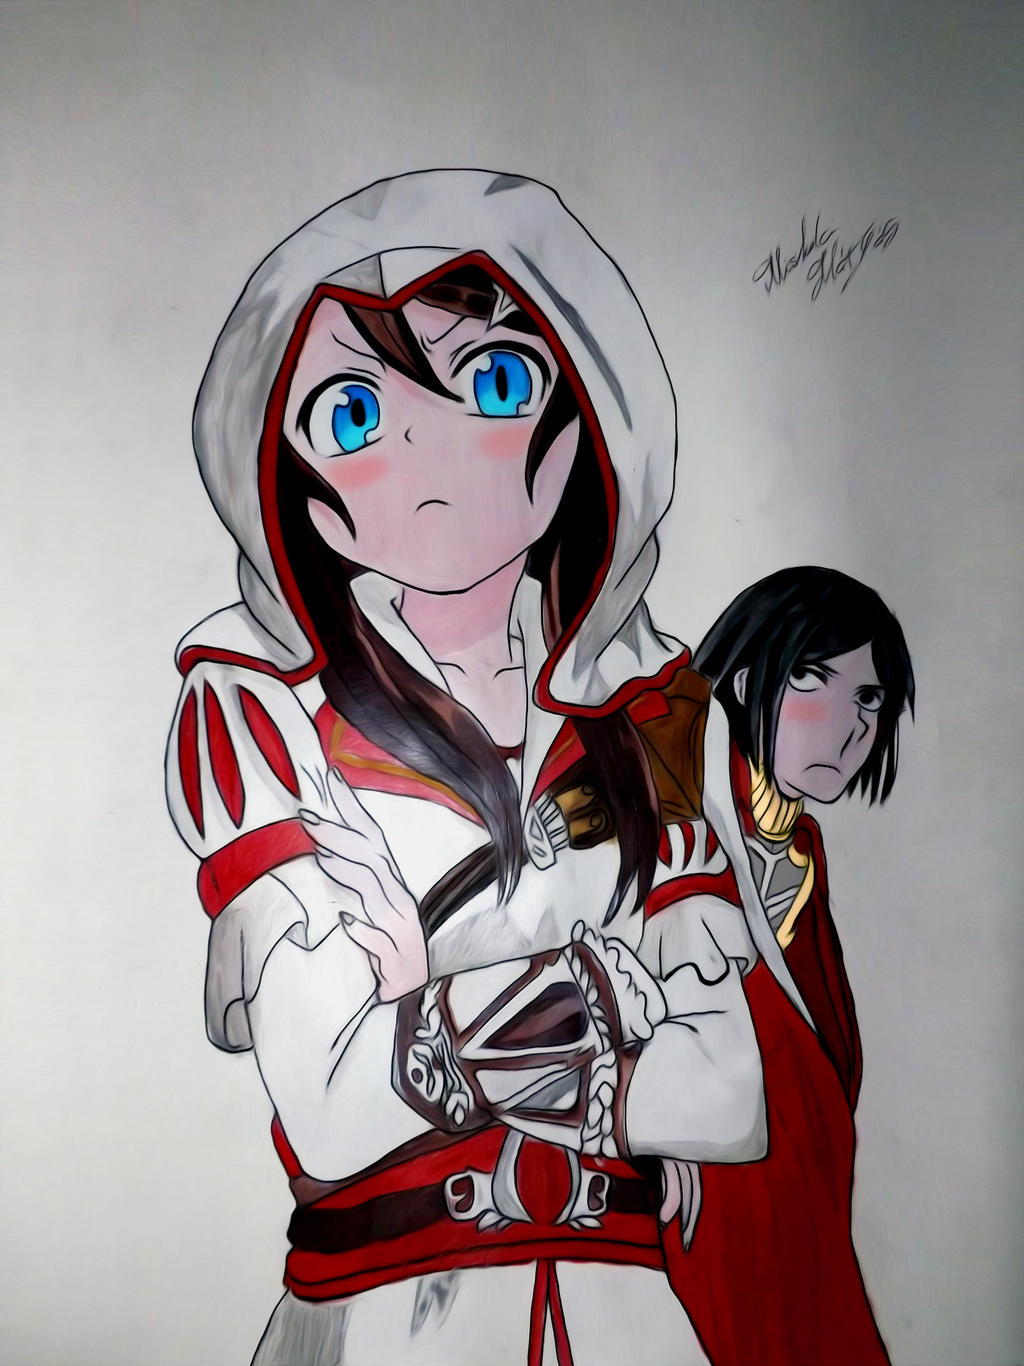 Assassin S Creed Anime Acryllic Painting By Mathias2107 On Deviantart